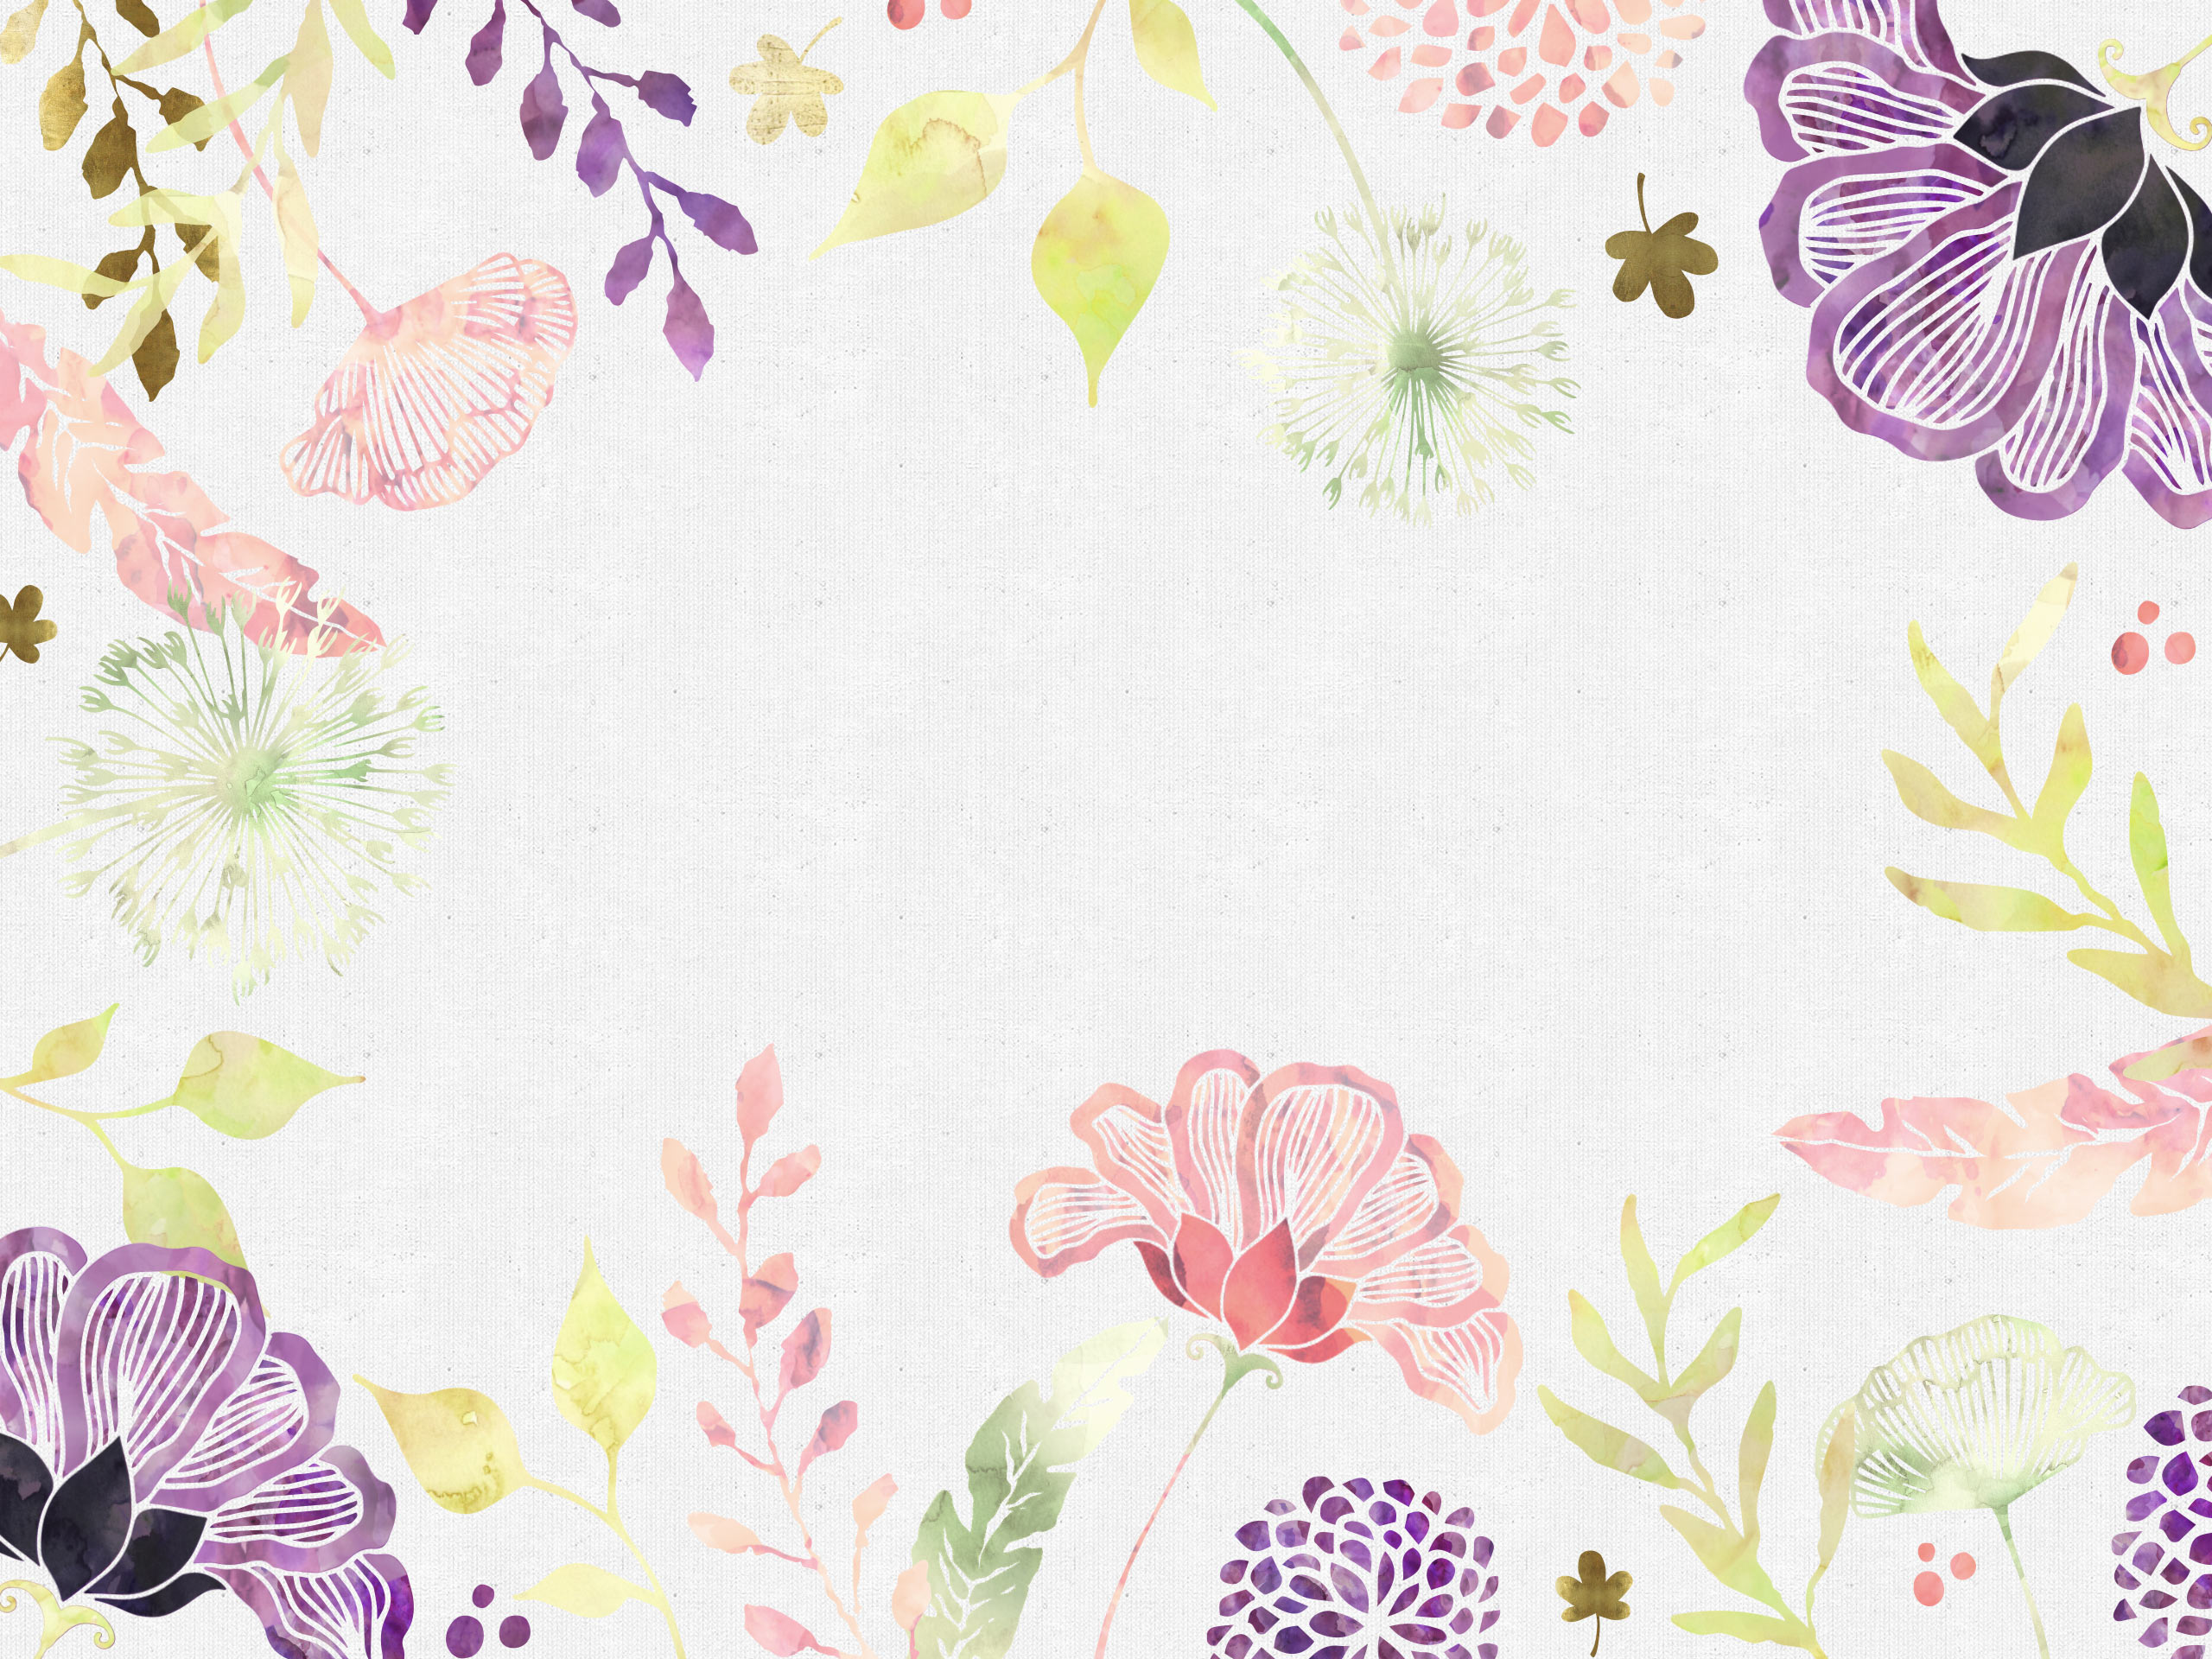 Free Floral Desktop Wallpaper U2013 I Choose Happiness